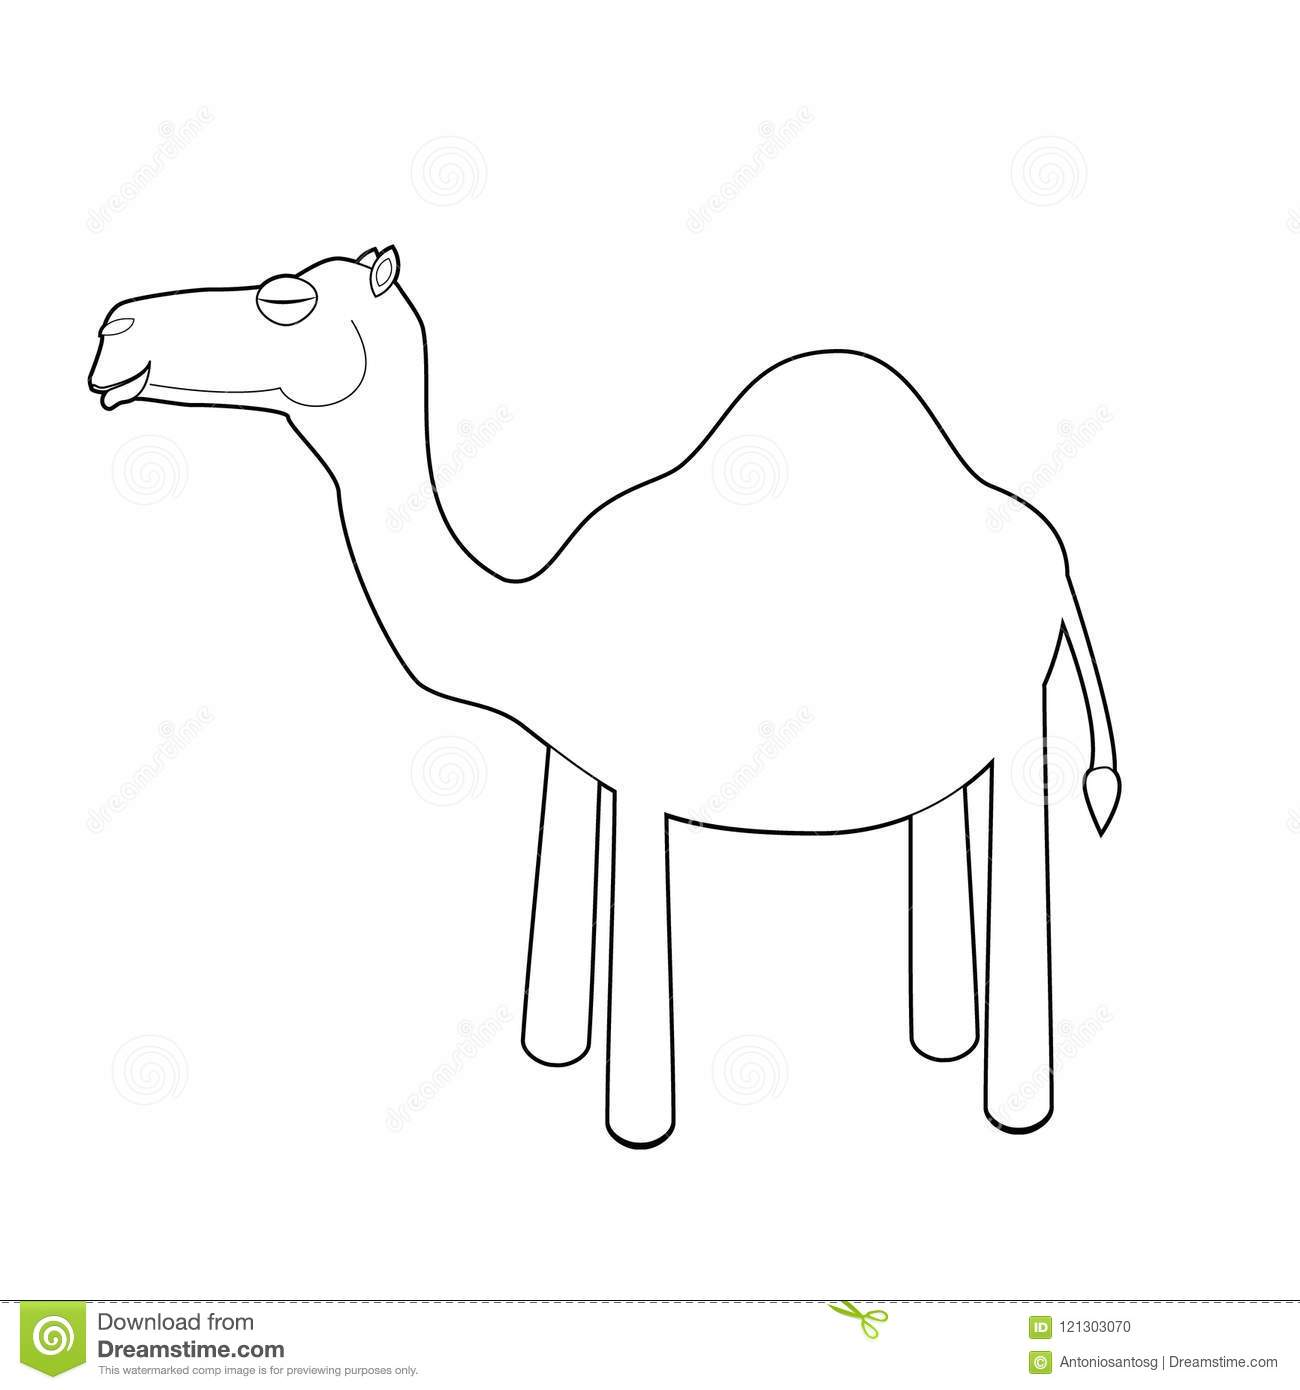 Easy Coloring Animals For Kids: Camel Stock Vector - Illustration of